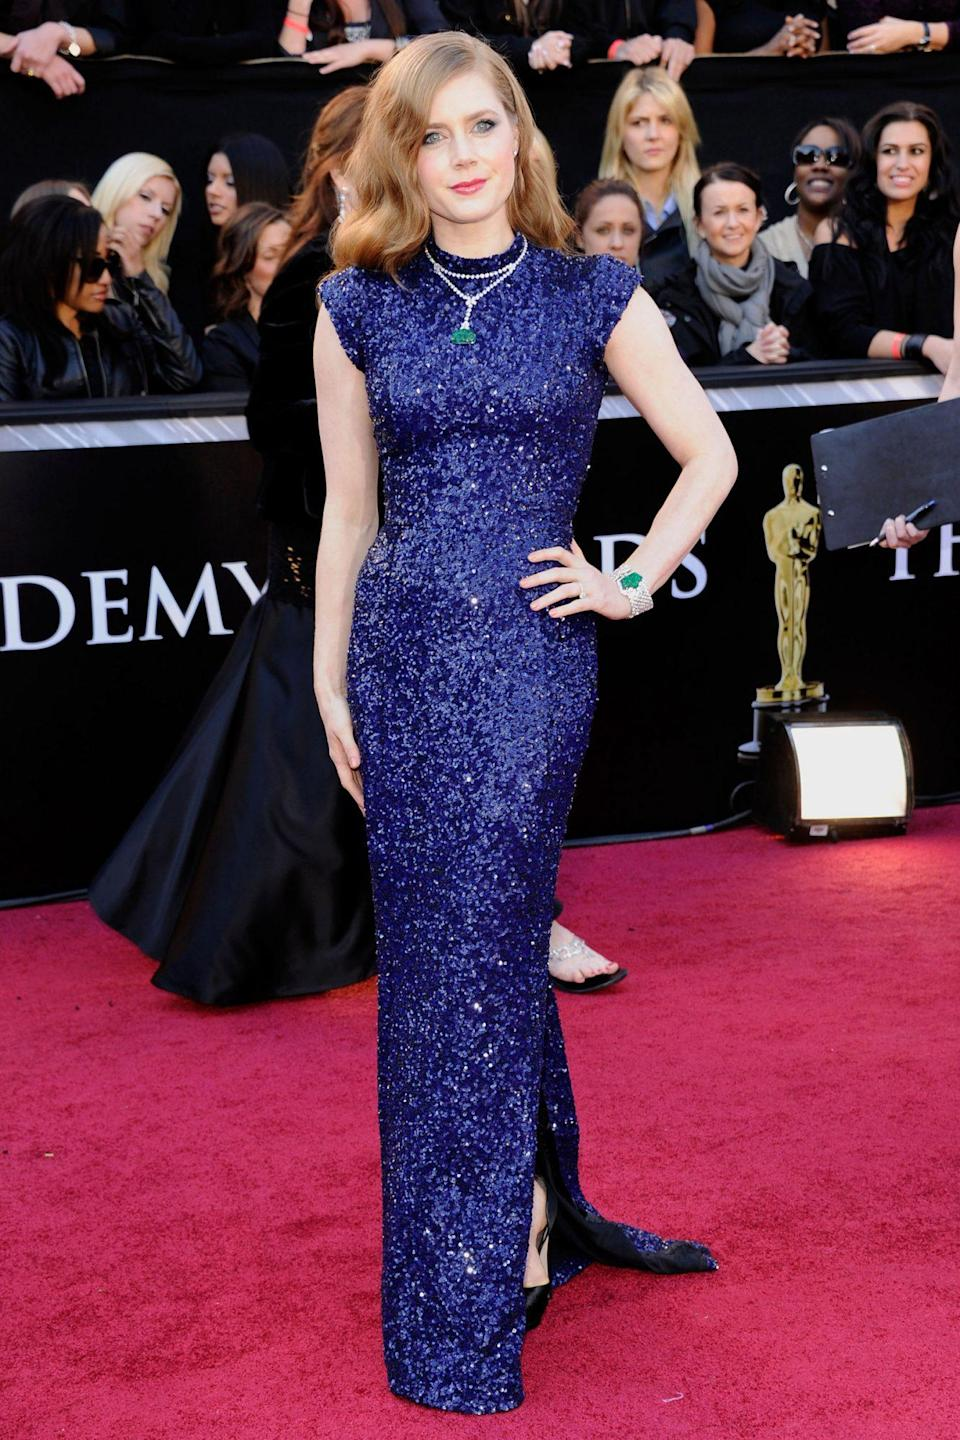 <p>Amy Adams shined on the carpet in a stunning navy blue L'Wren Scott gown. She was nominated for Best Supporting Actress for her role in <em>The Fighter. </em></p>